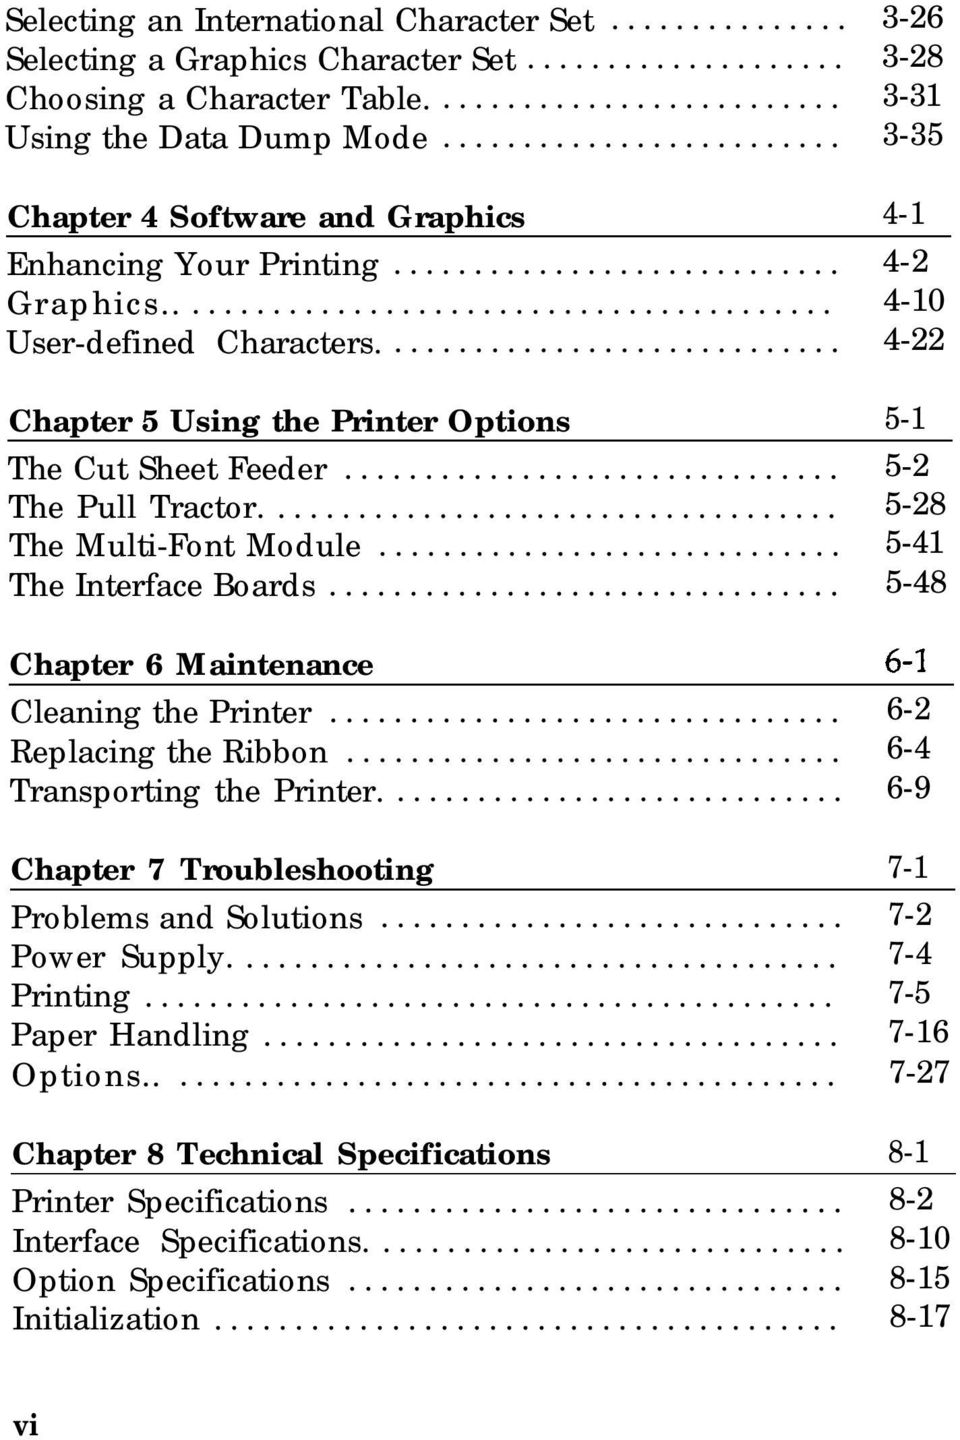 .. 5-2 The Pull Tractor.... 5-28 The Multi-Font Module... 5-41 The Interface Boards... 5-48 Chapter 6 Maintenance Cleaning the Printer... 6-2 Replacing the Ribbon... 6-4 Transporting the Printer.